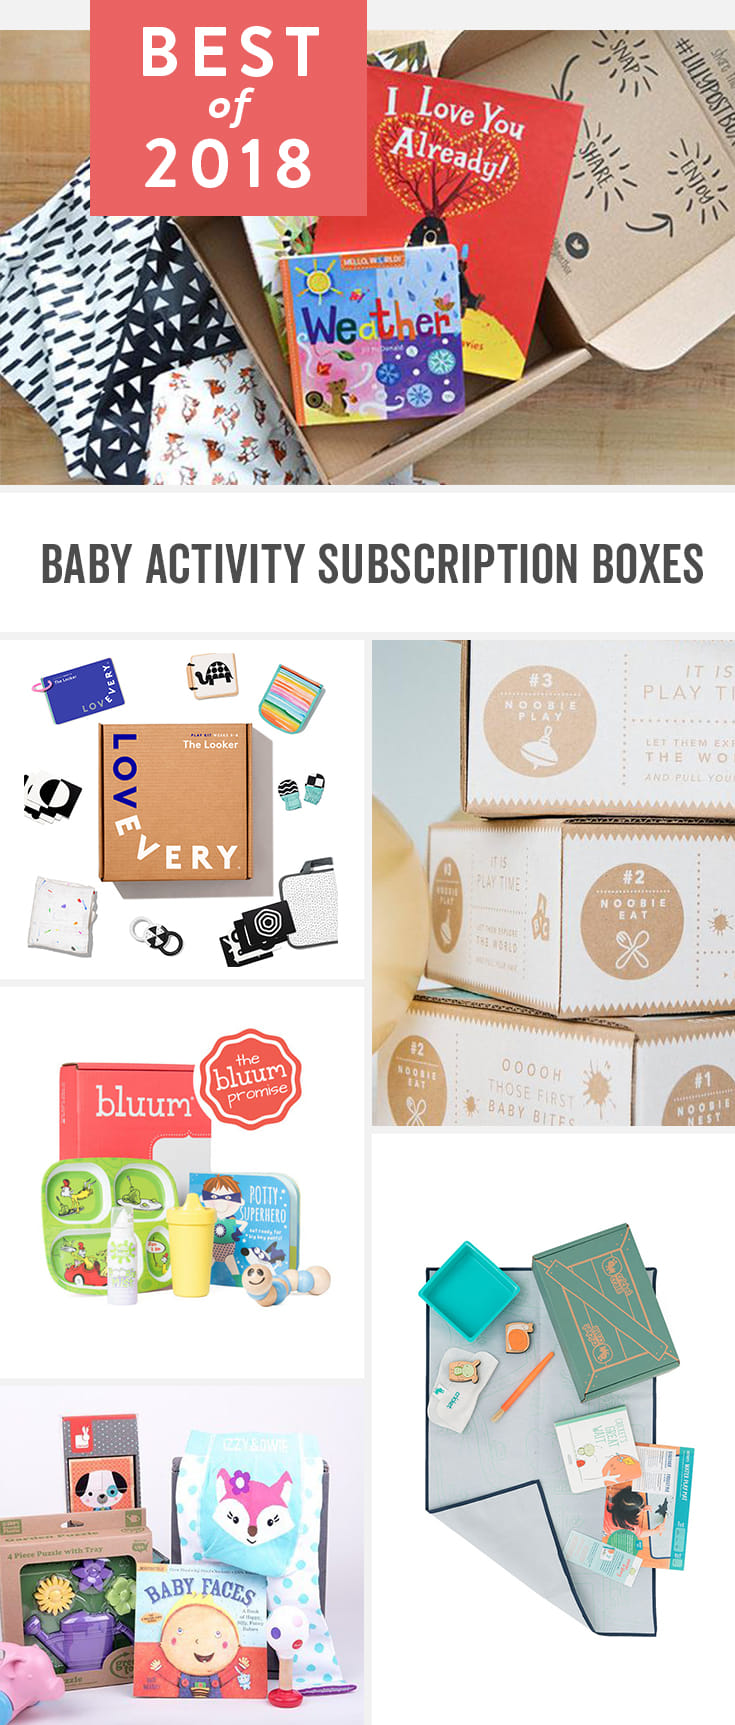 We tried them all! Here's a guide to the most fun boxes that'll keep your kids entertained for hours. These make great gifts for birthdays and holidays.